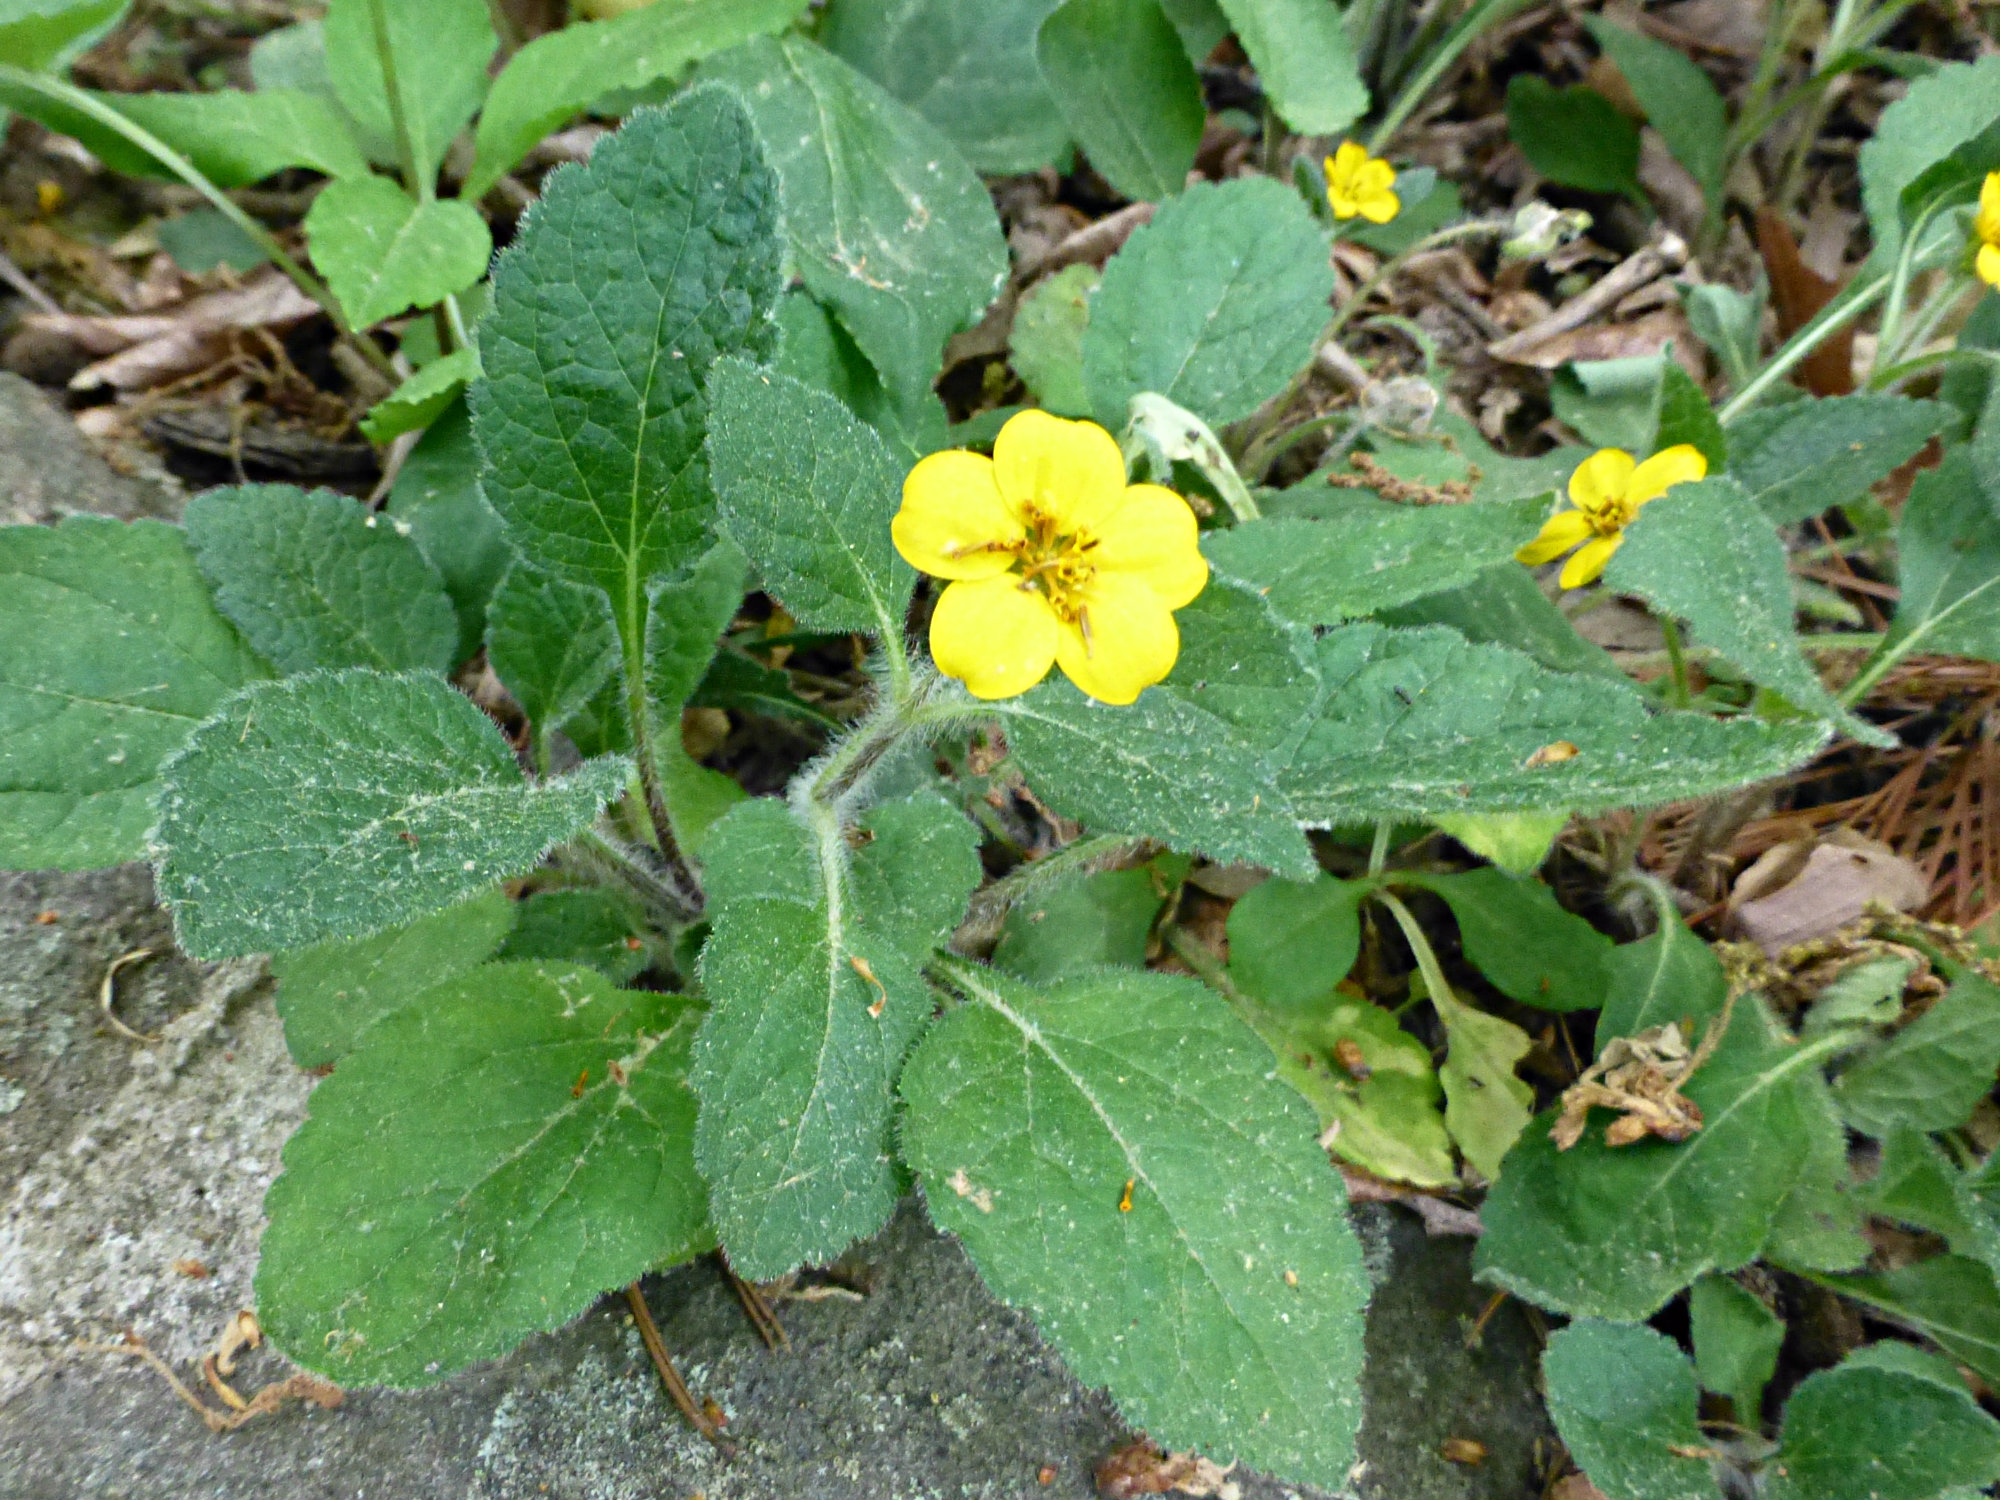 Plant with large leaves and brightly colored yellow flower blooming with rocks and leaves underneath